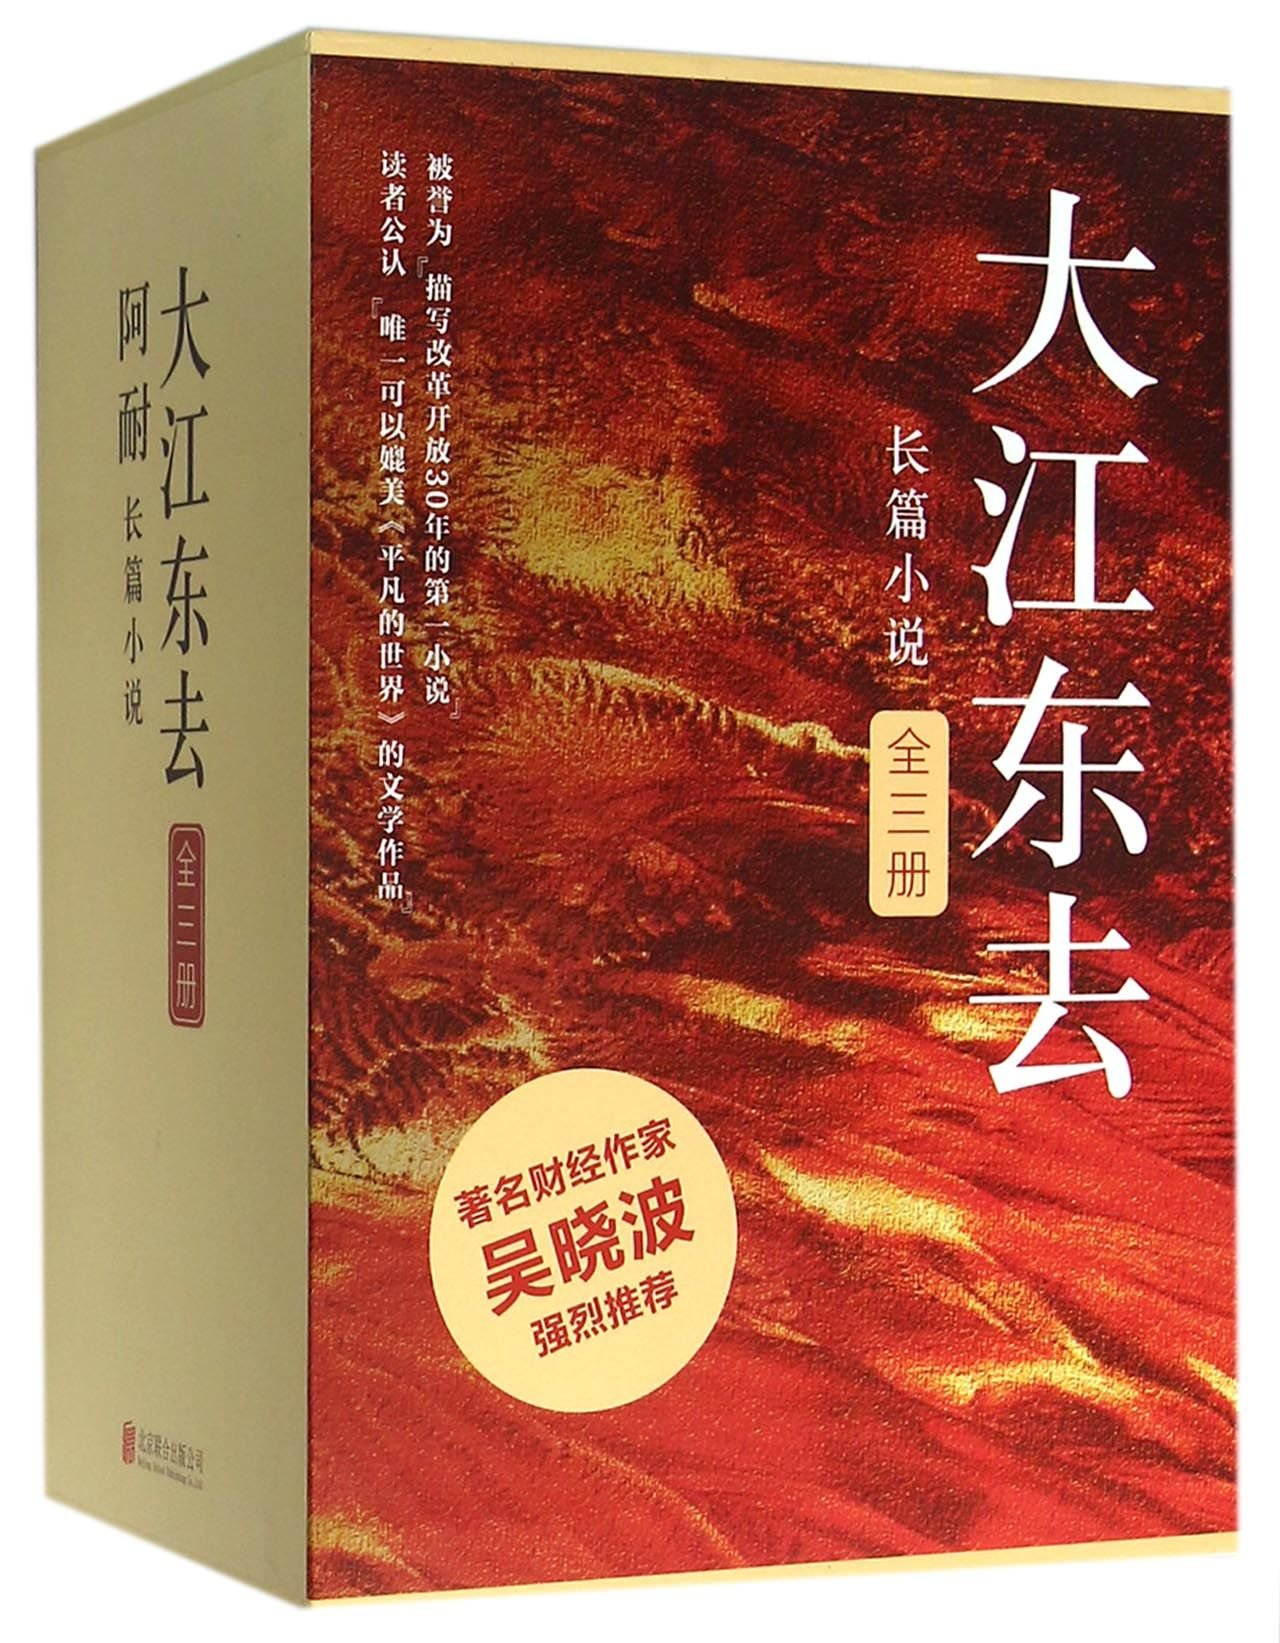 The River of No Return (3 volumes) (Chinese Edition) ebook